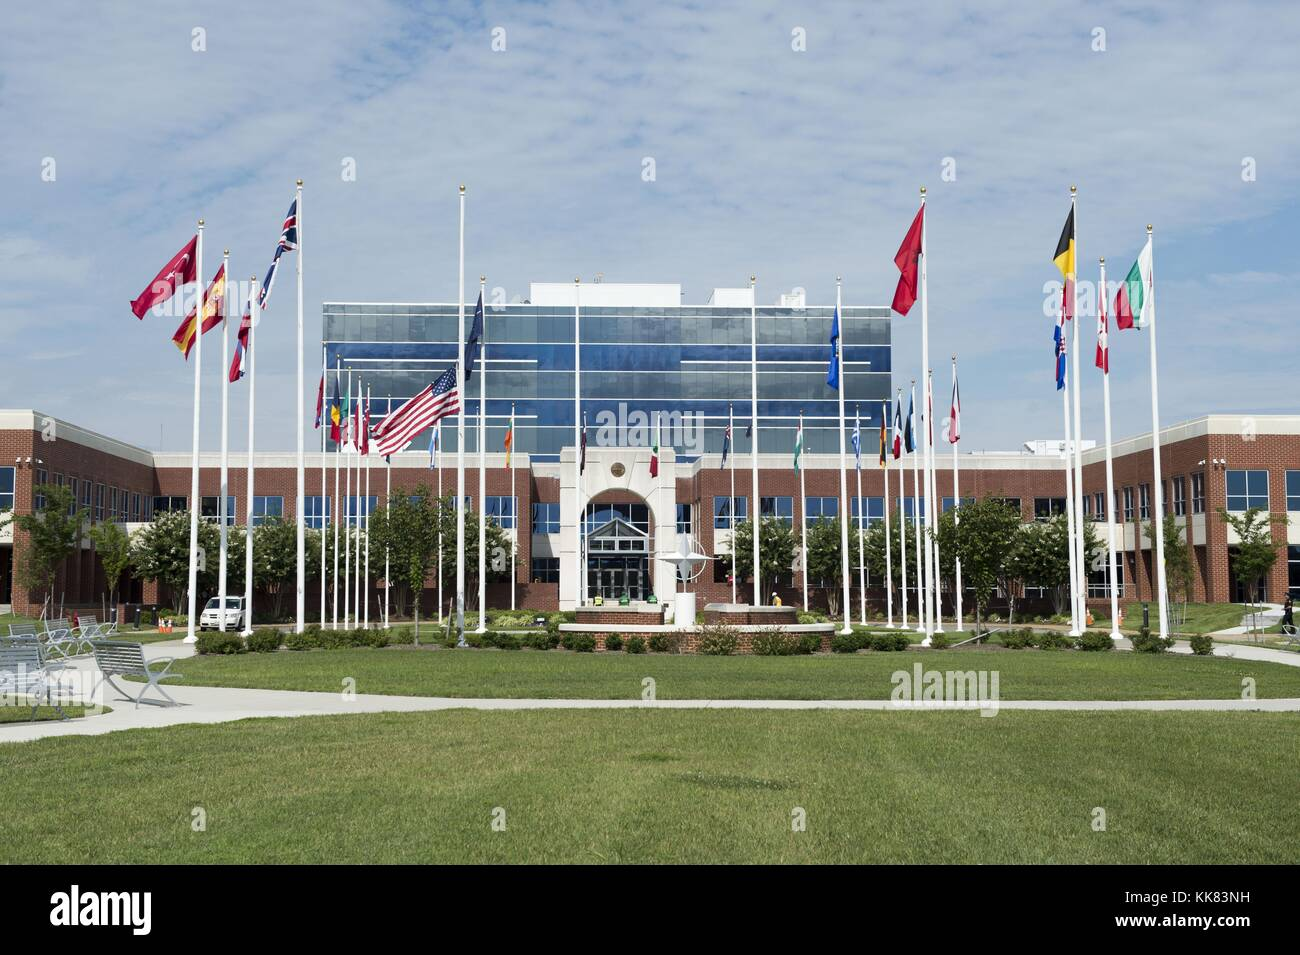 The American flag flies at half-staff outside the NATO headquarters building at Camp Allen in remembrance of the - Stock Image